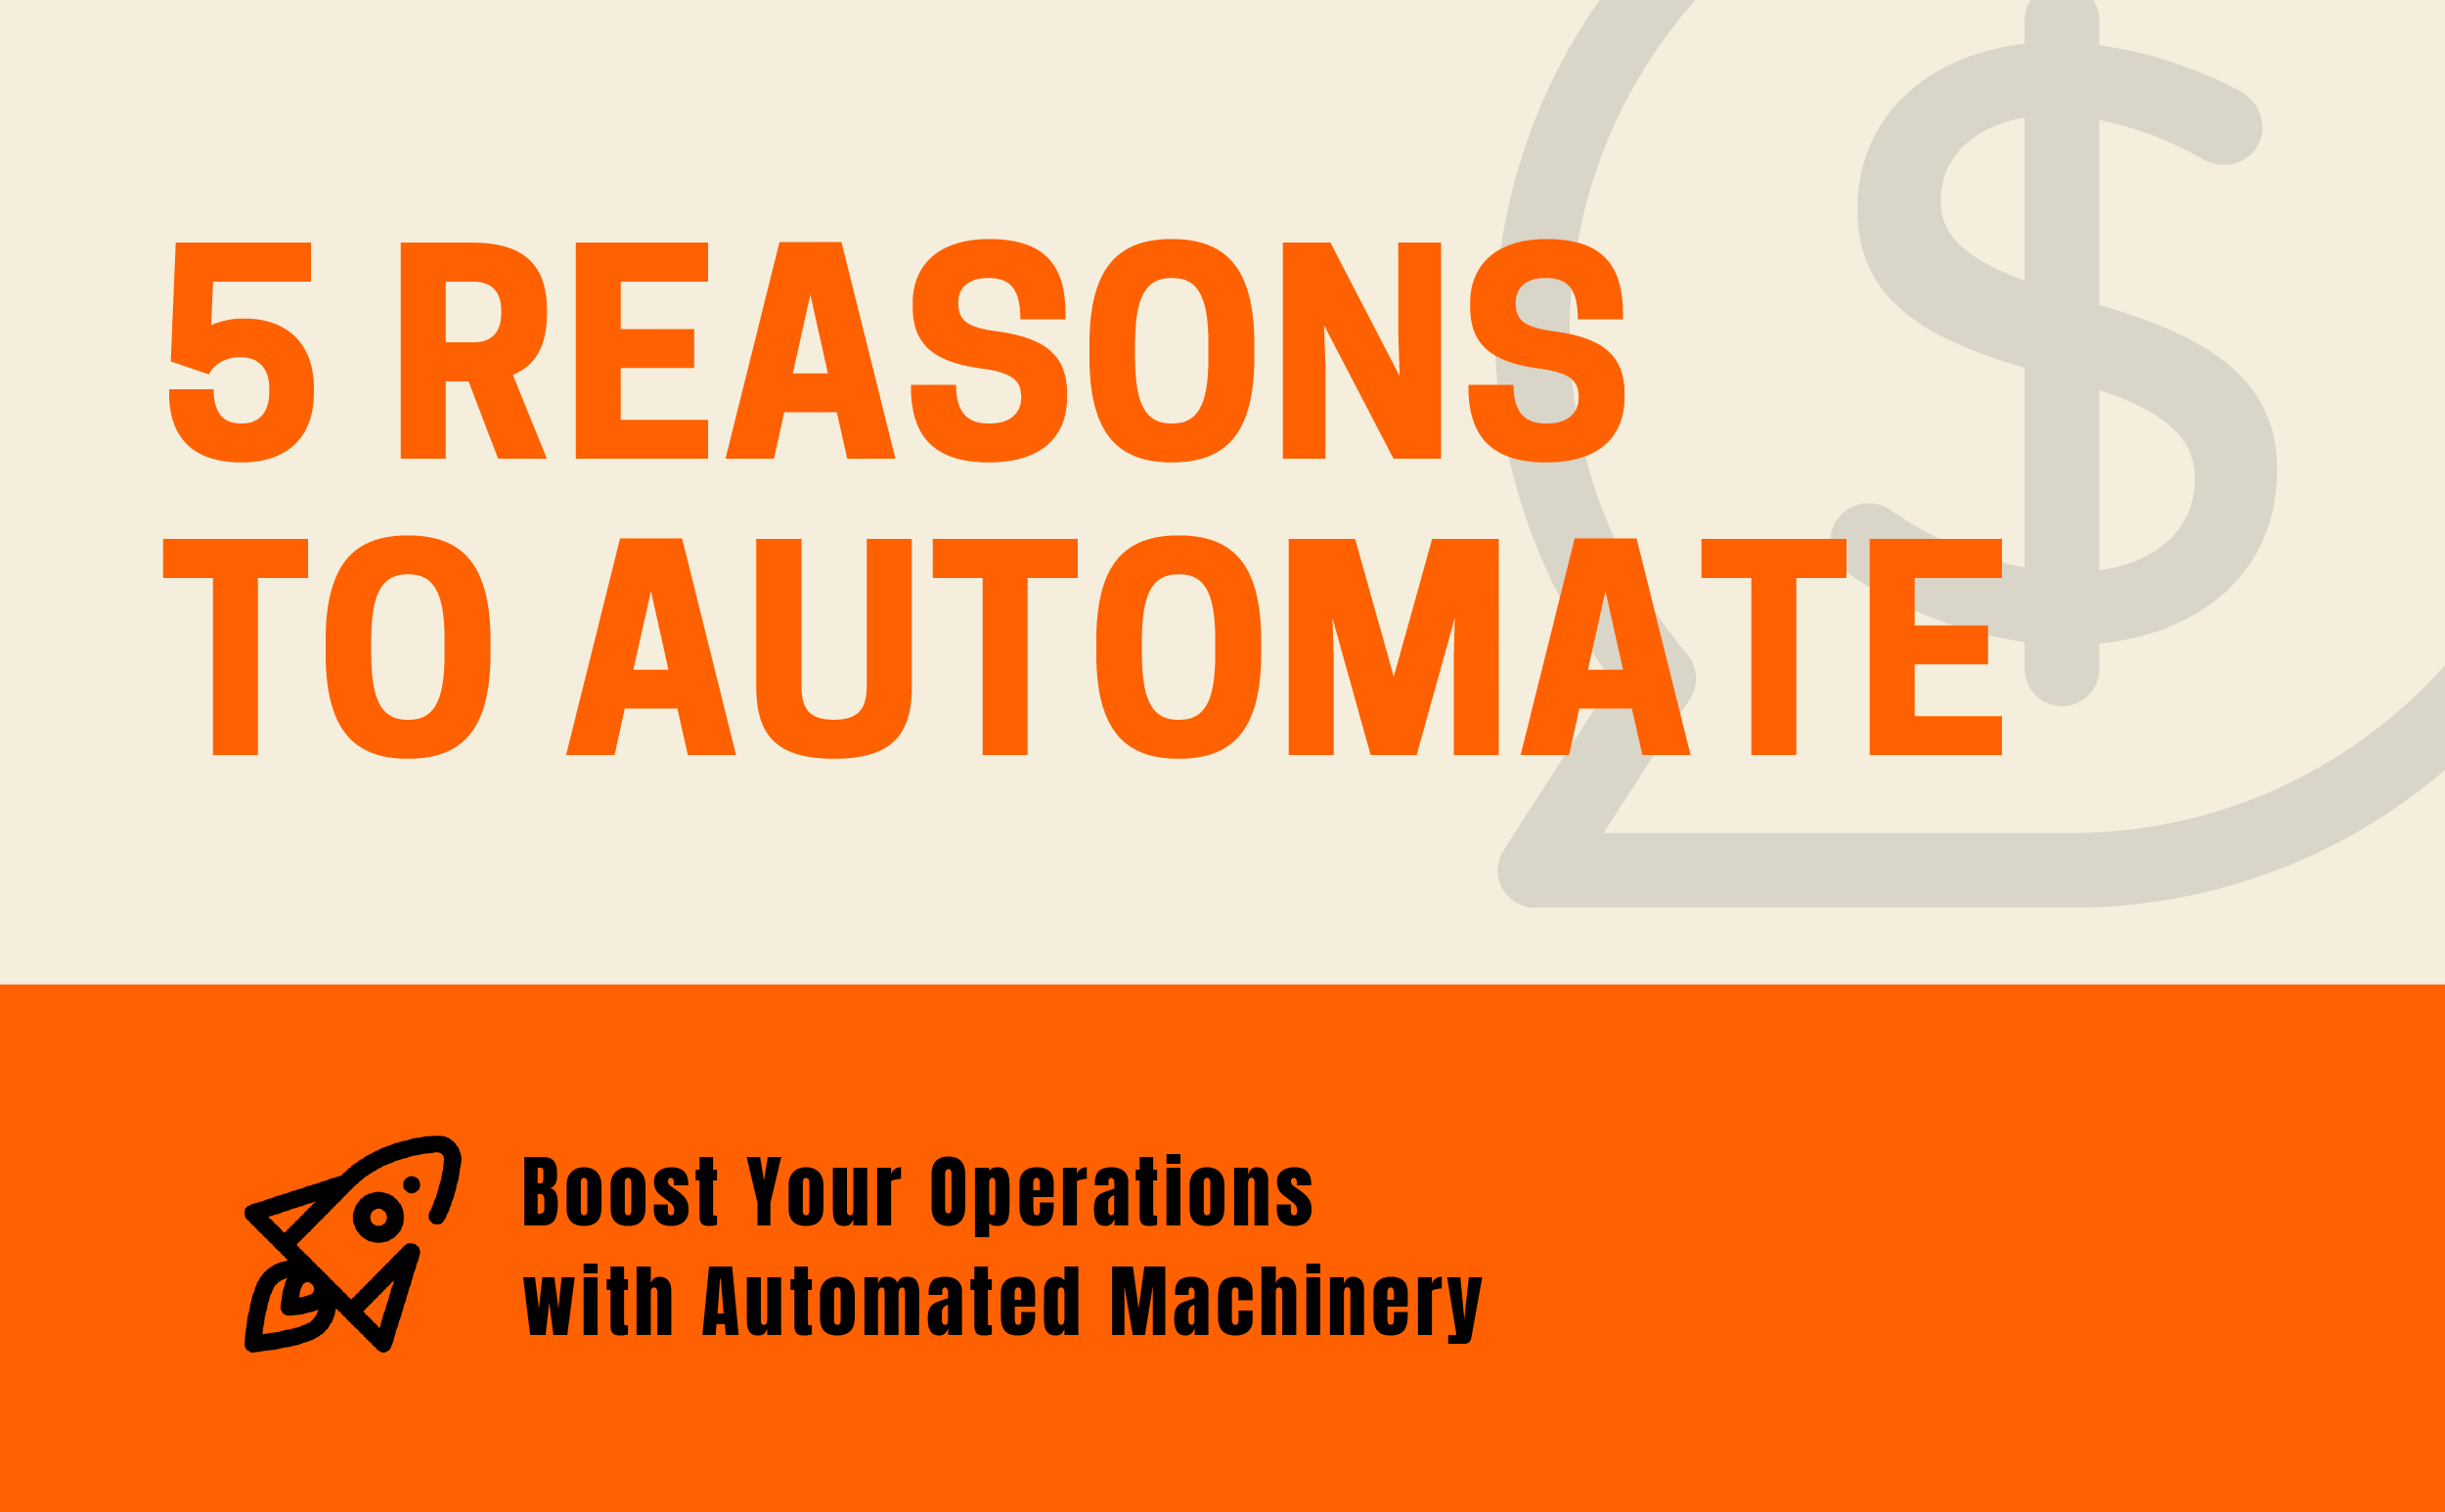 Reasons for automation